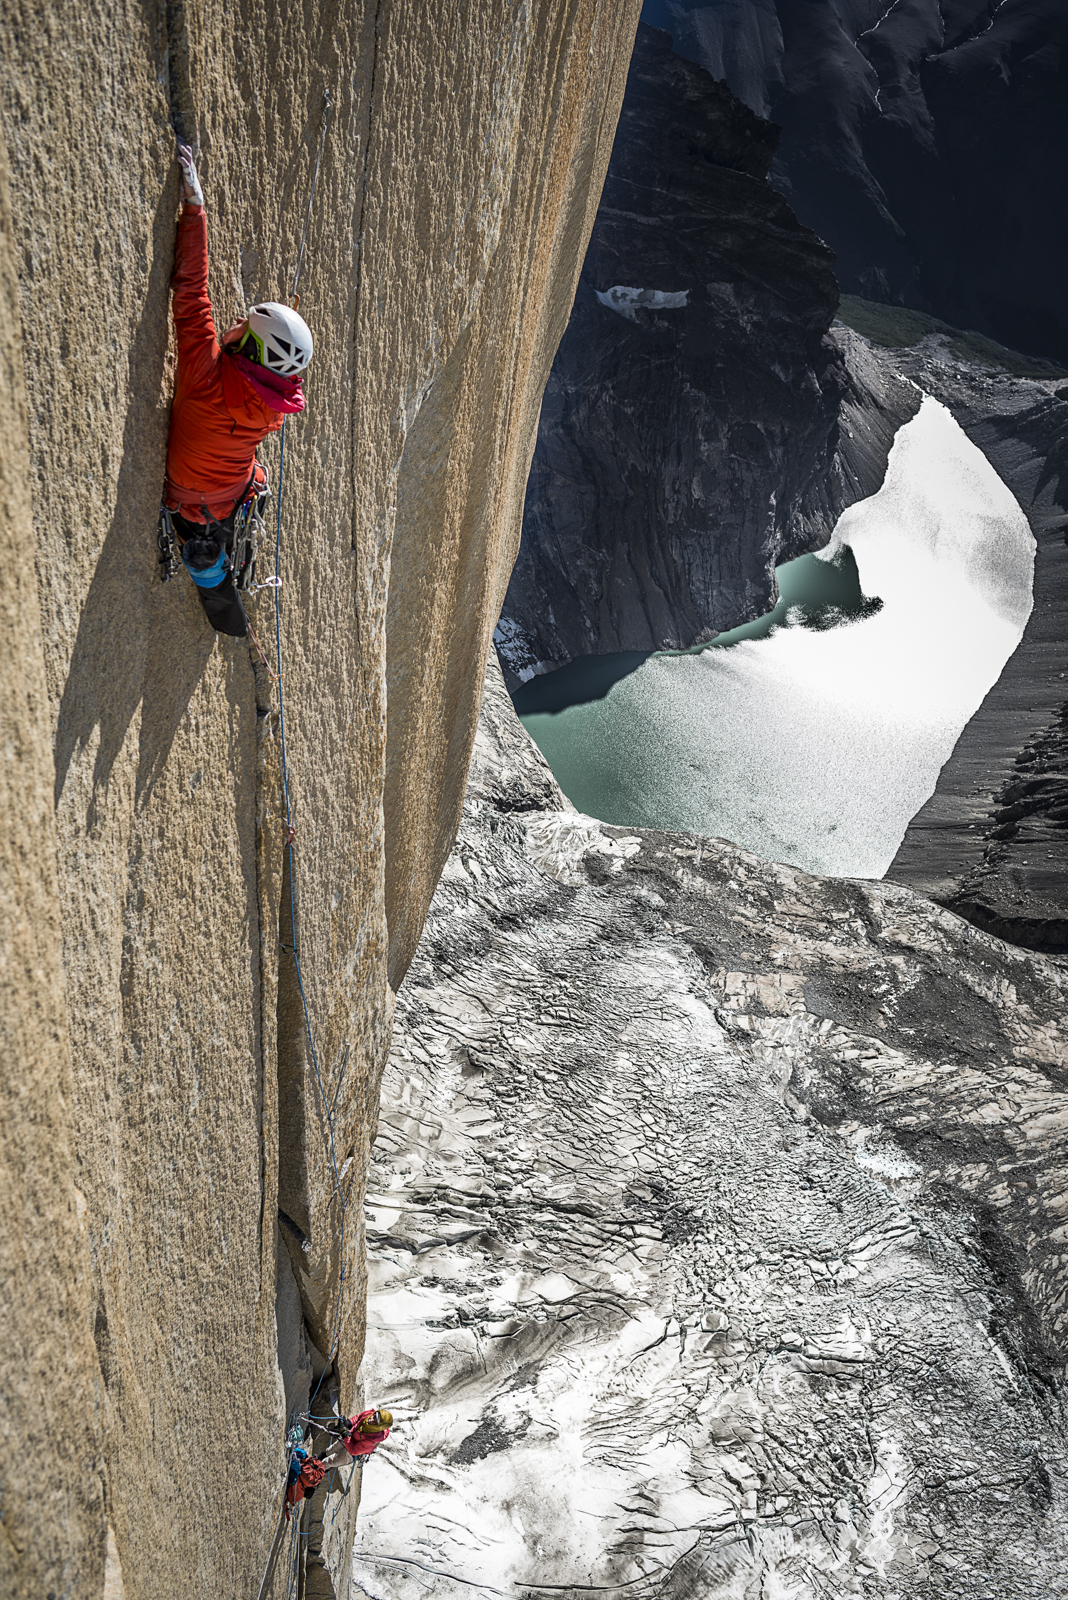 Ines on pitch 23, 7c, Riders on the Storm.  Photo: Thomas Senf